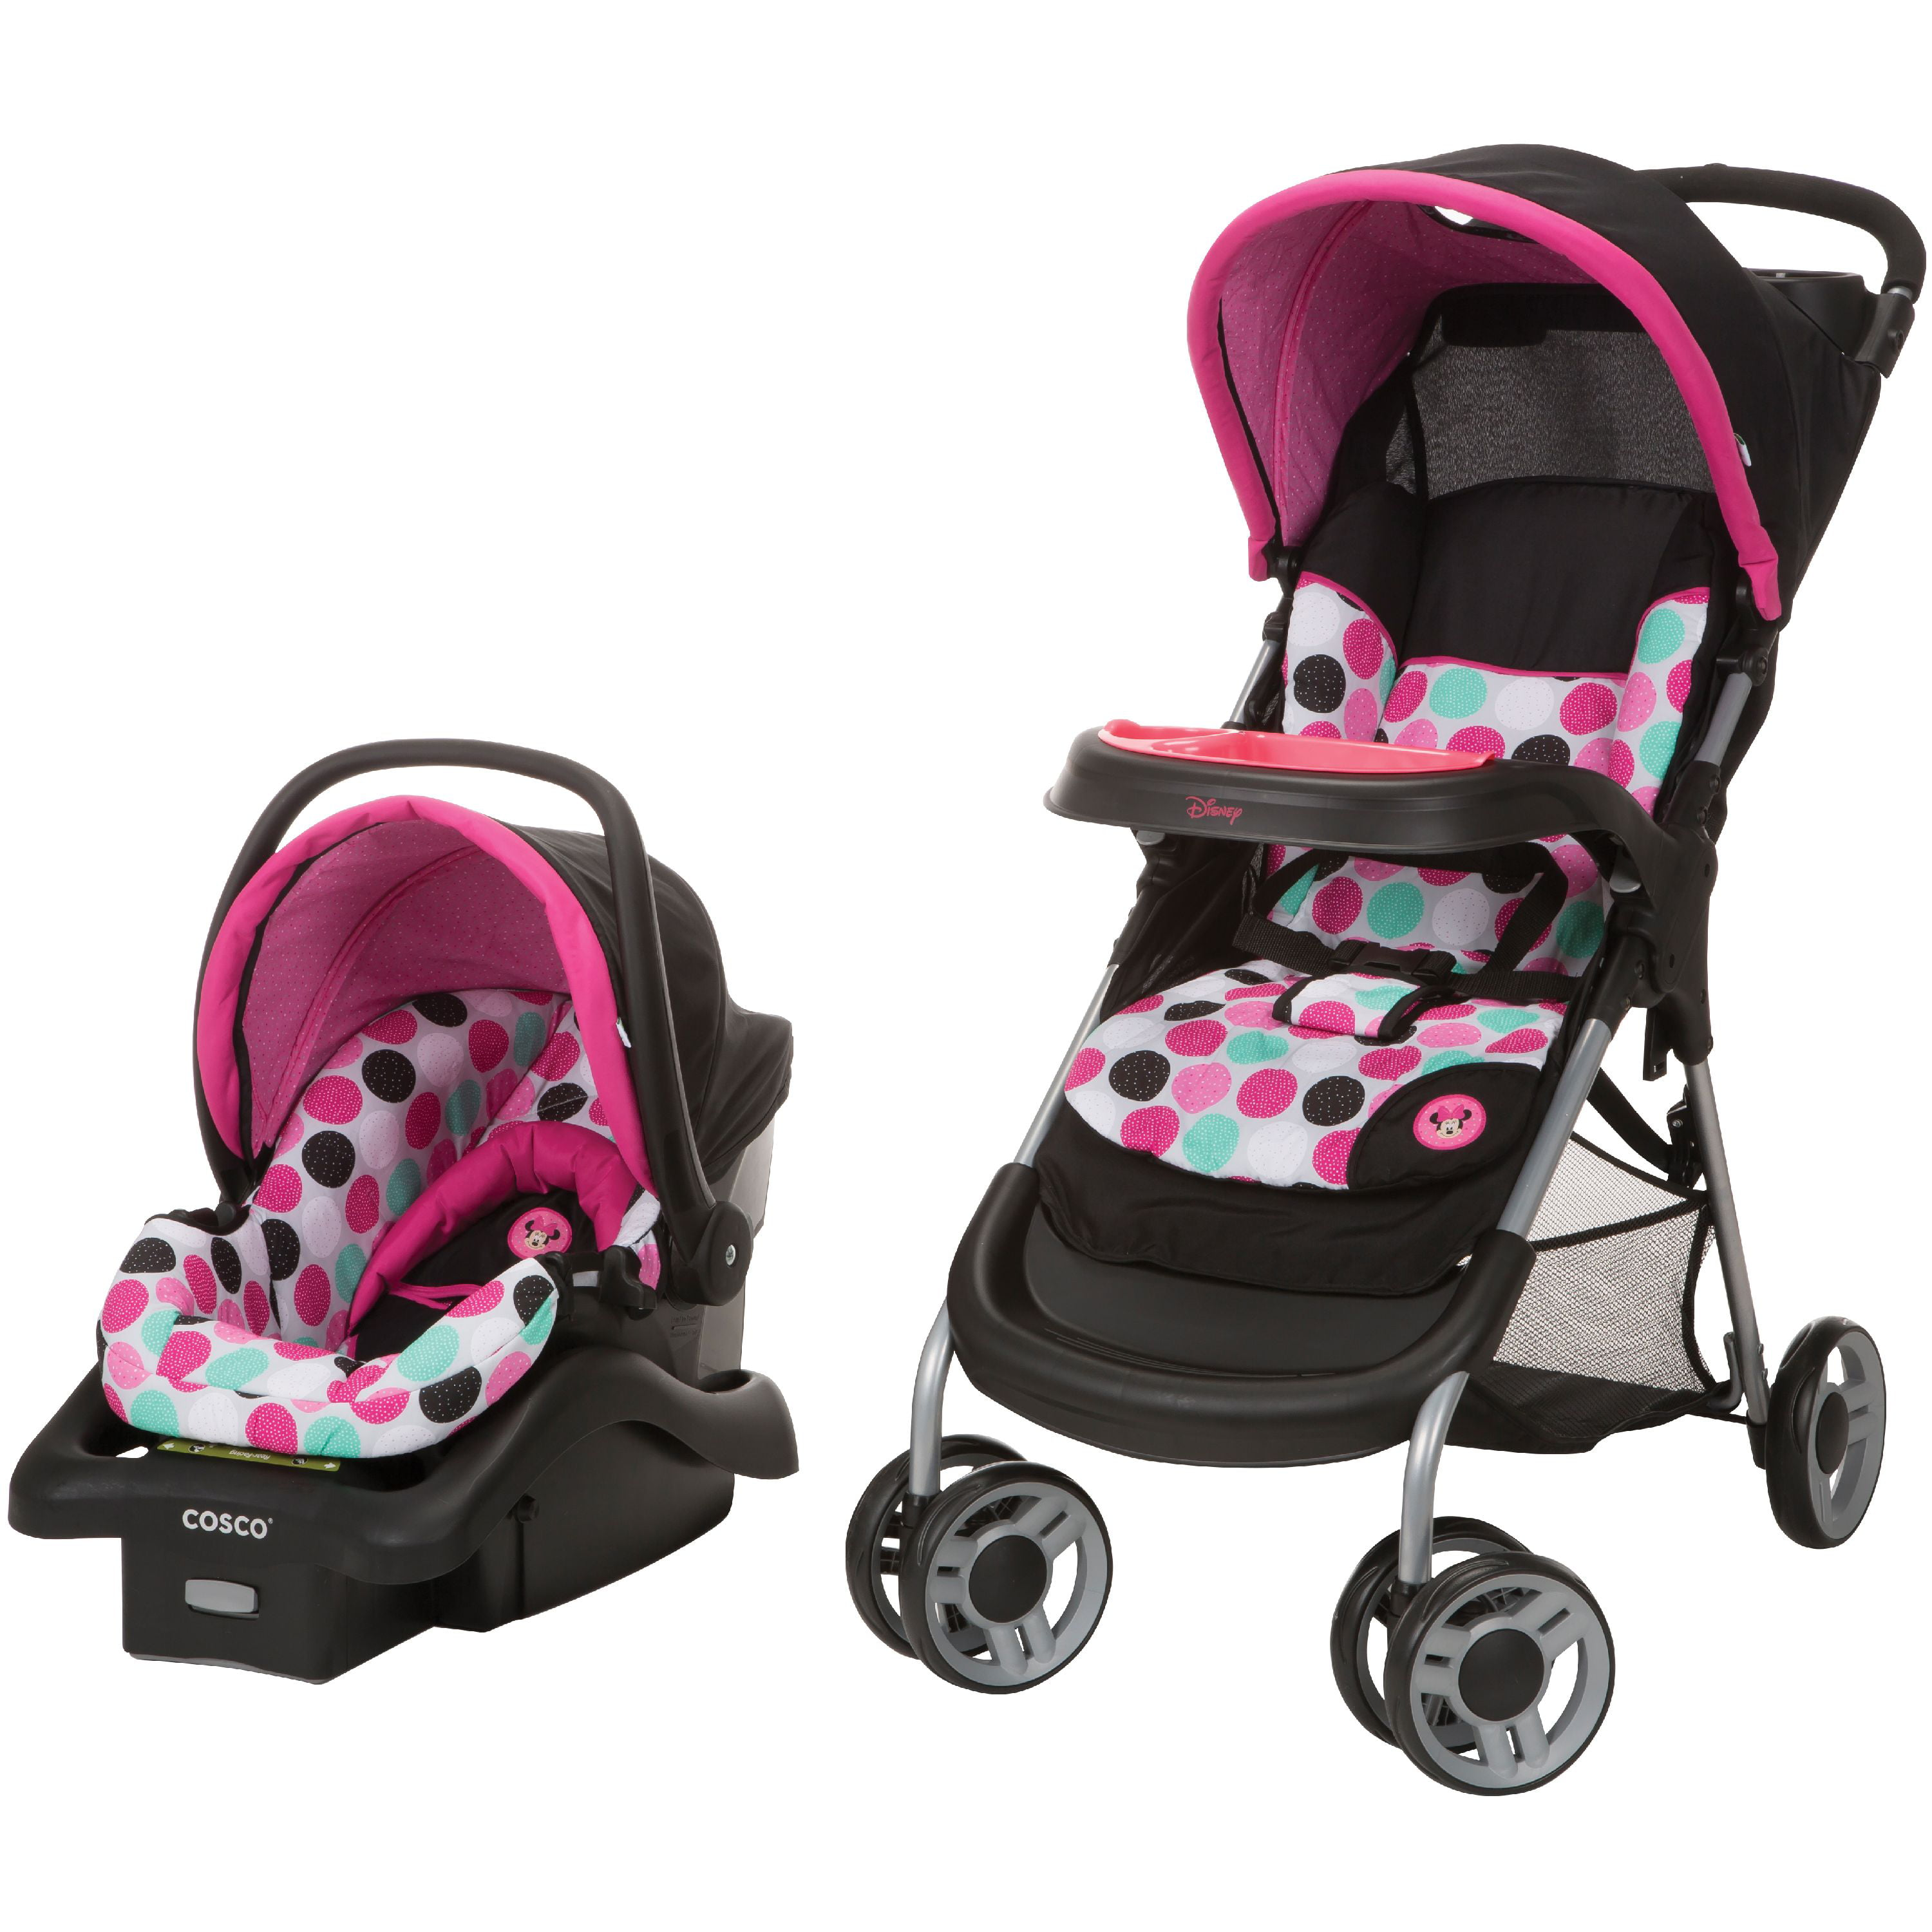 Disney Baby Lift StrollTM Plus Travel System Minnie Dotty